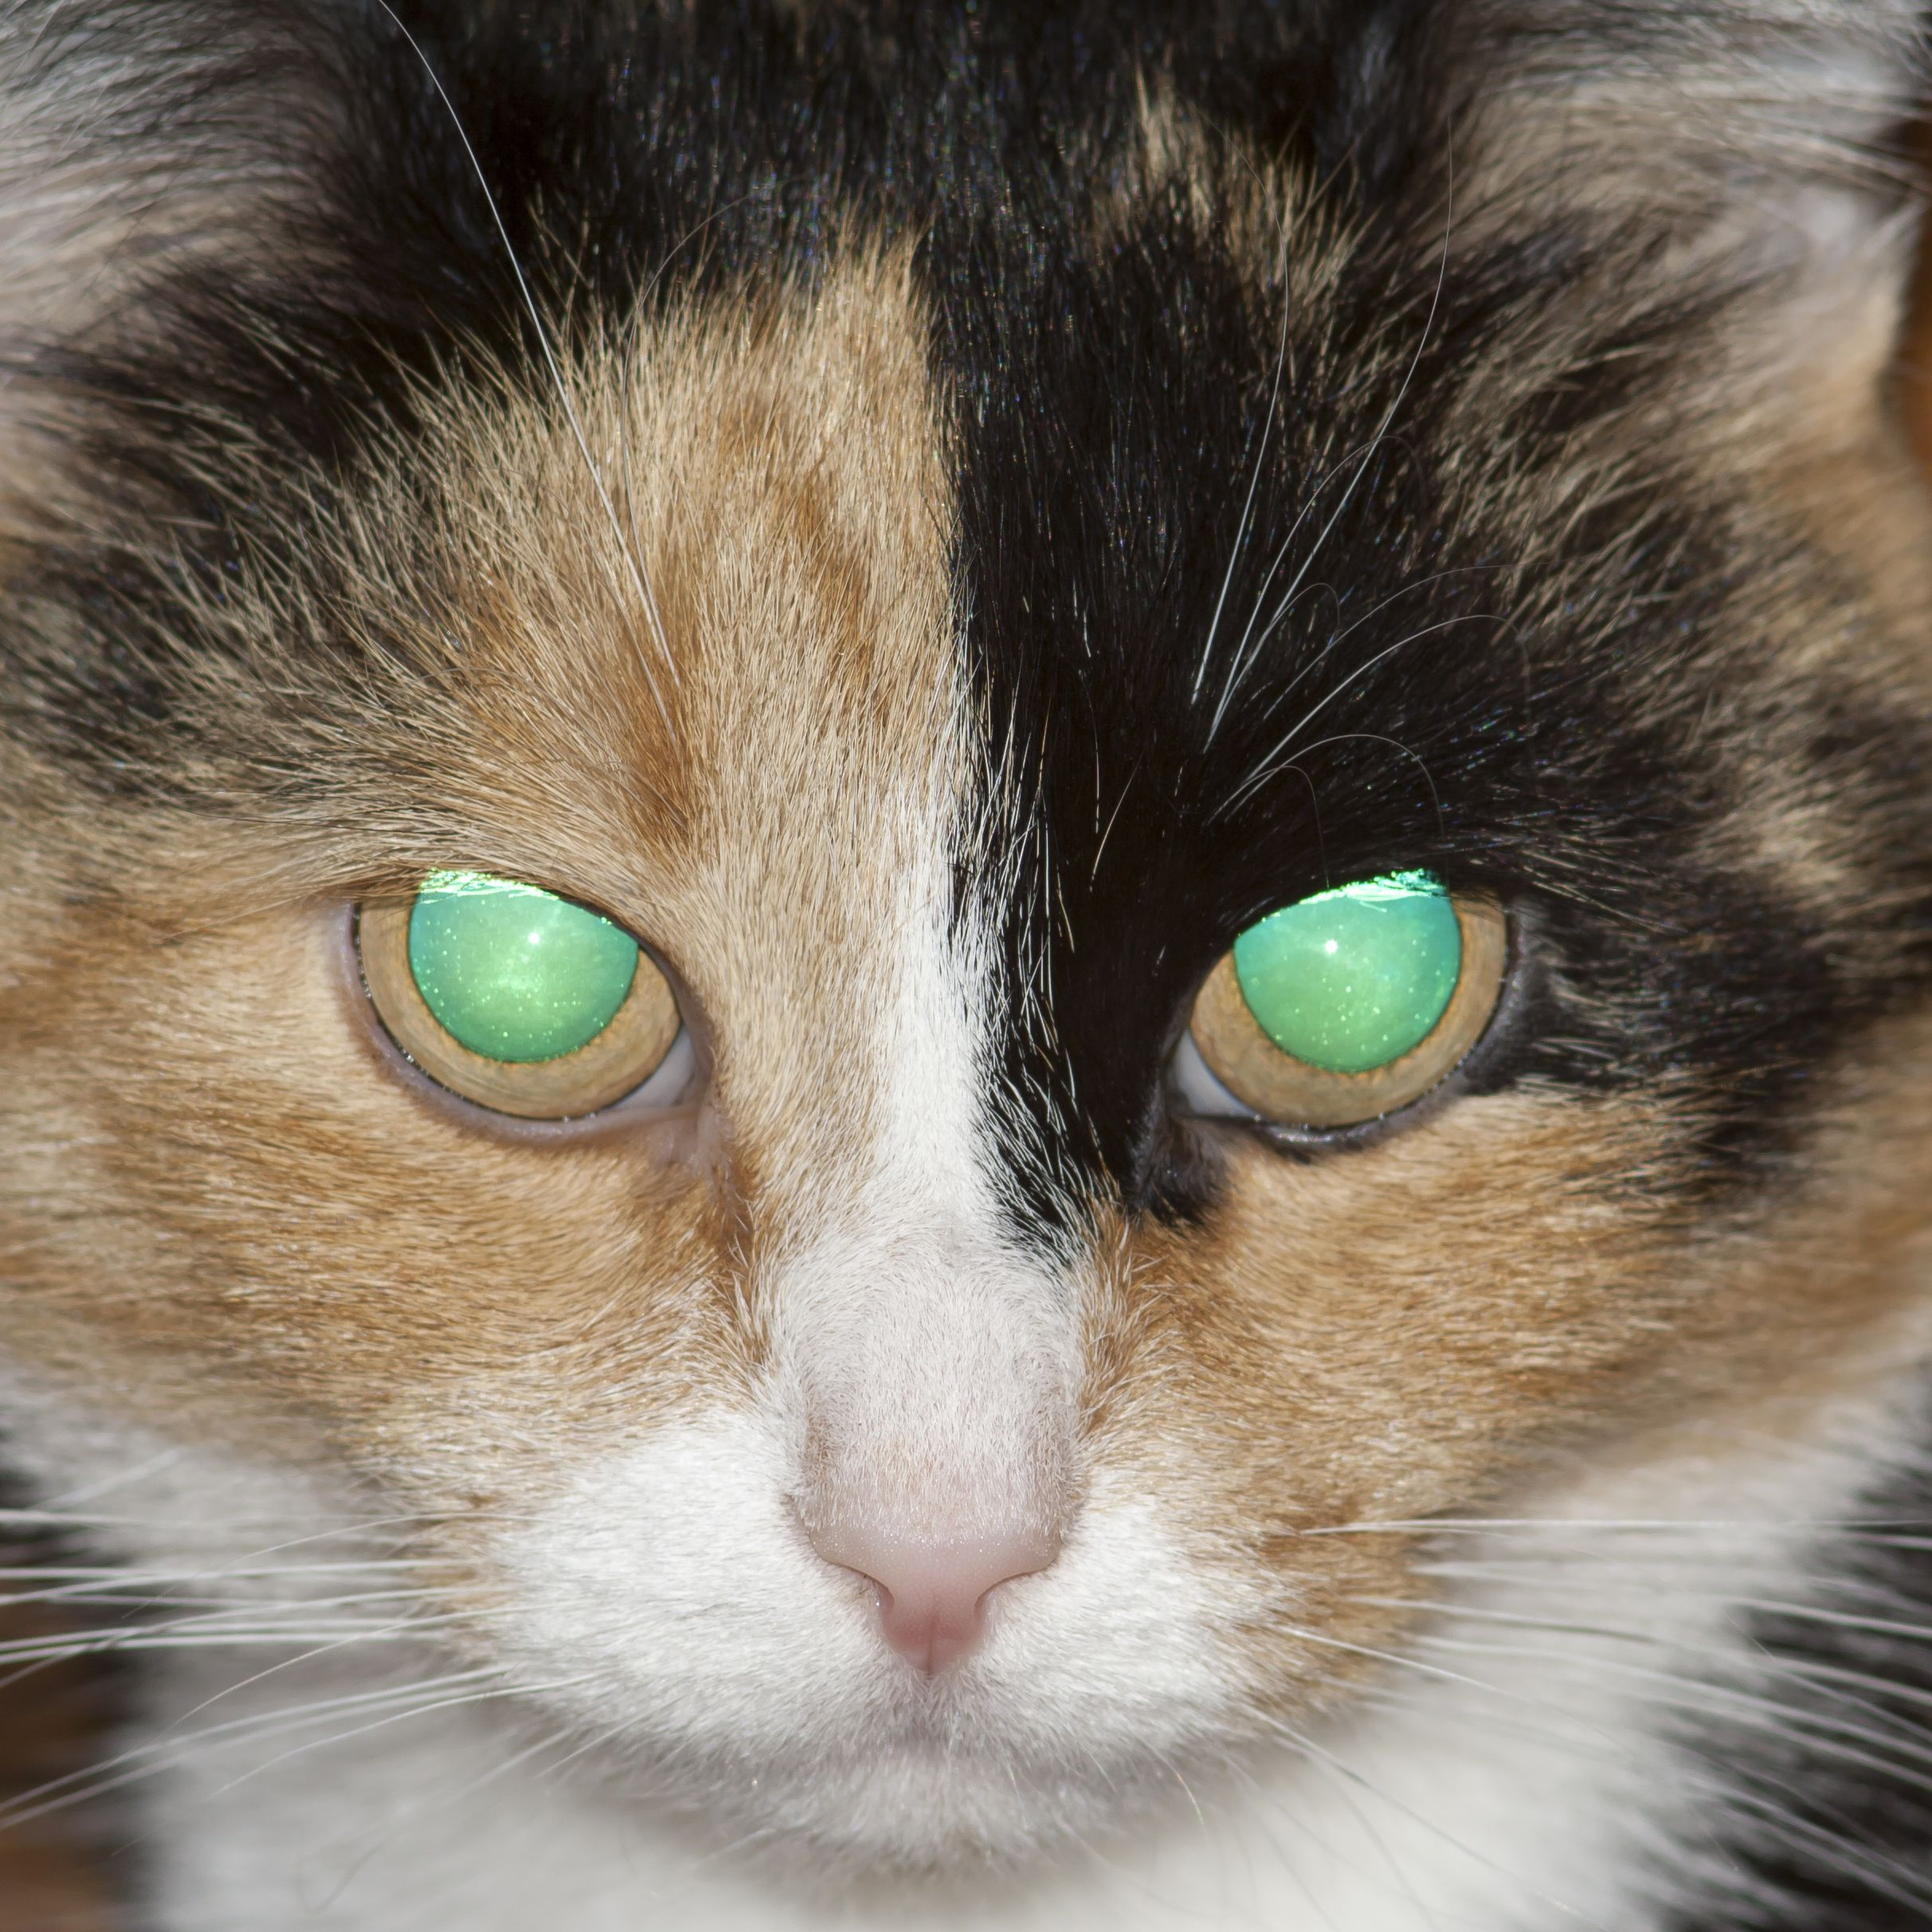 What Causes Green Eye In Animal Photographs